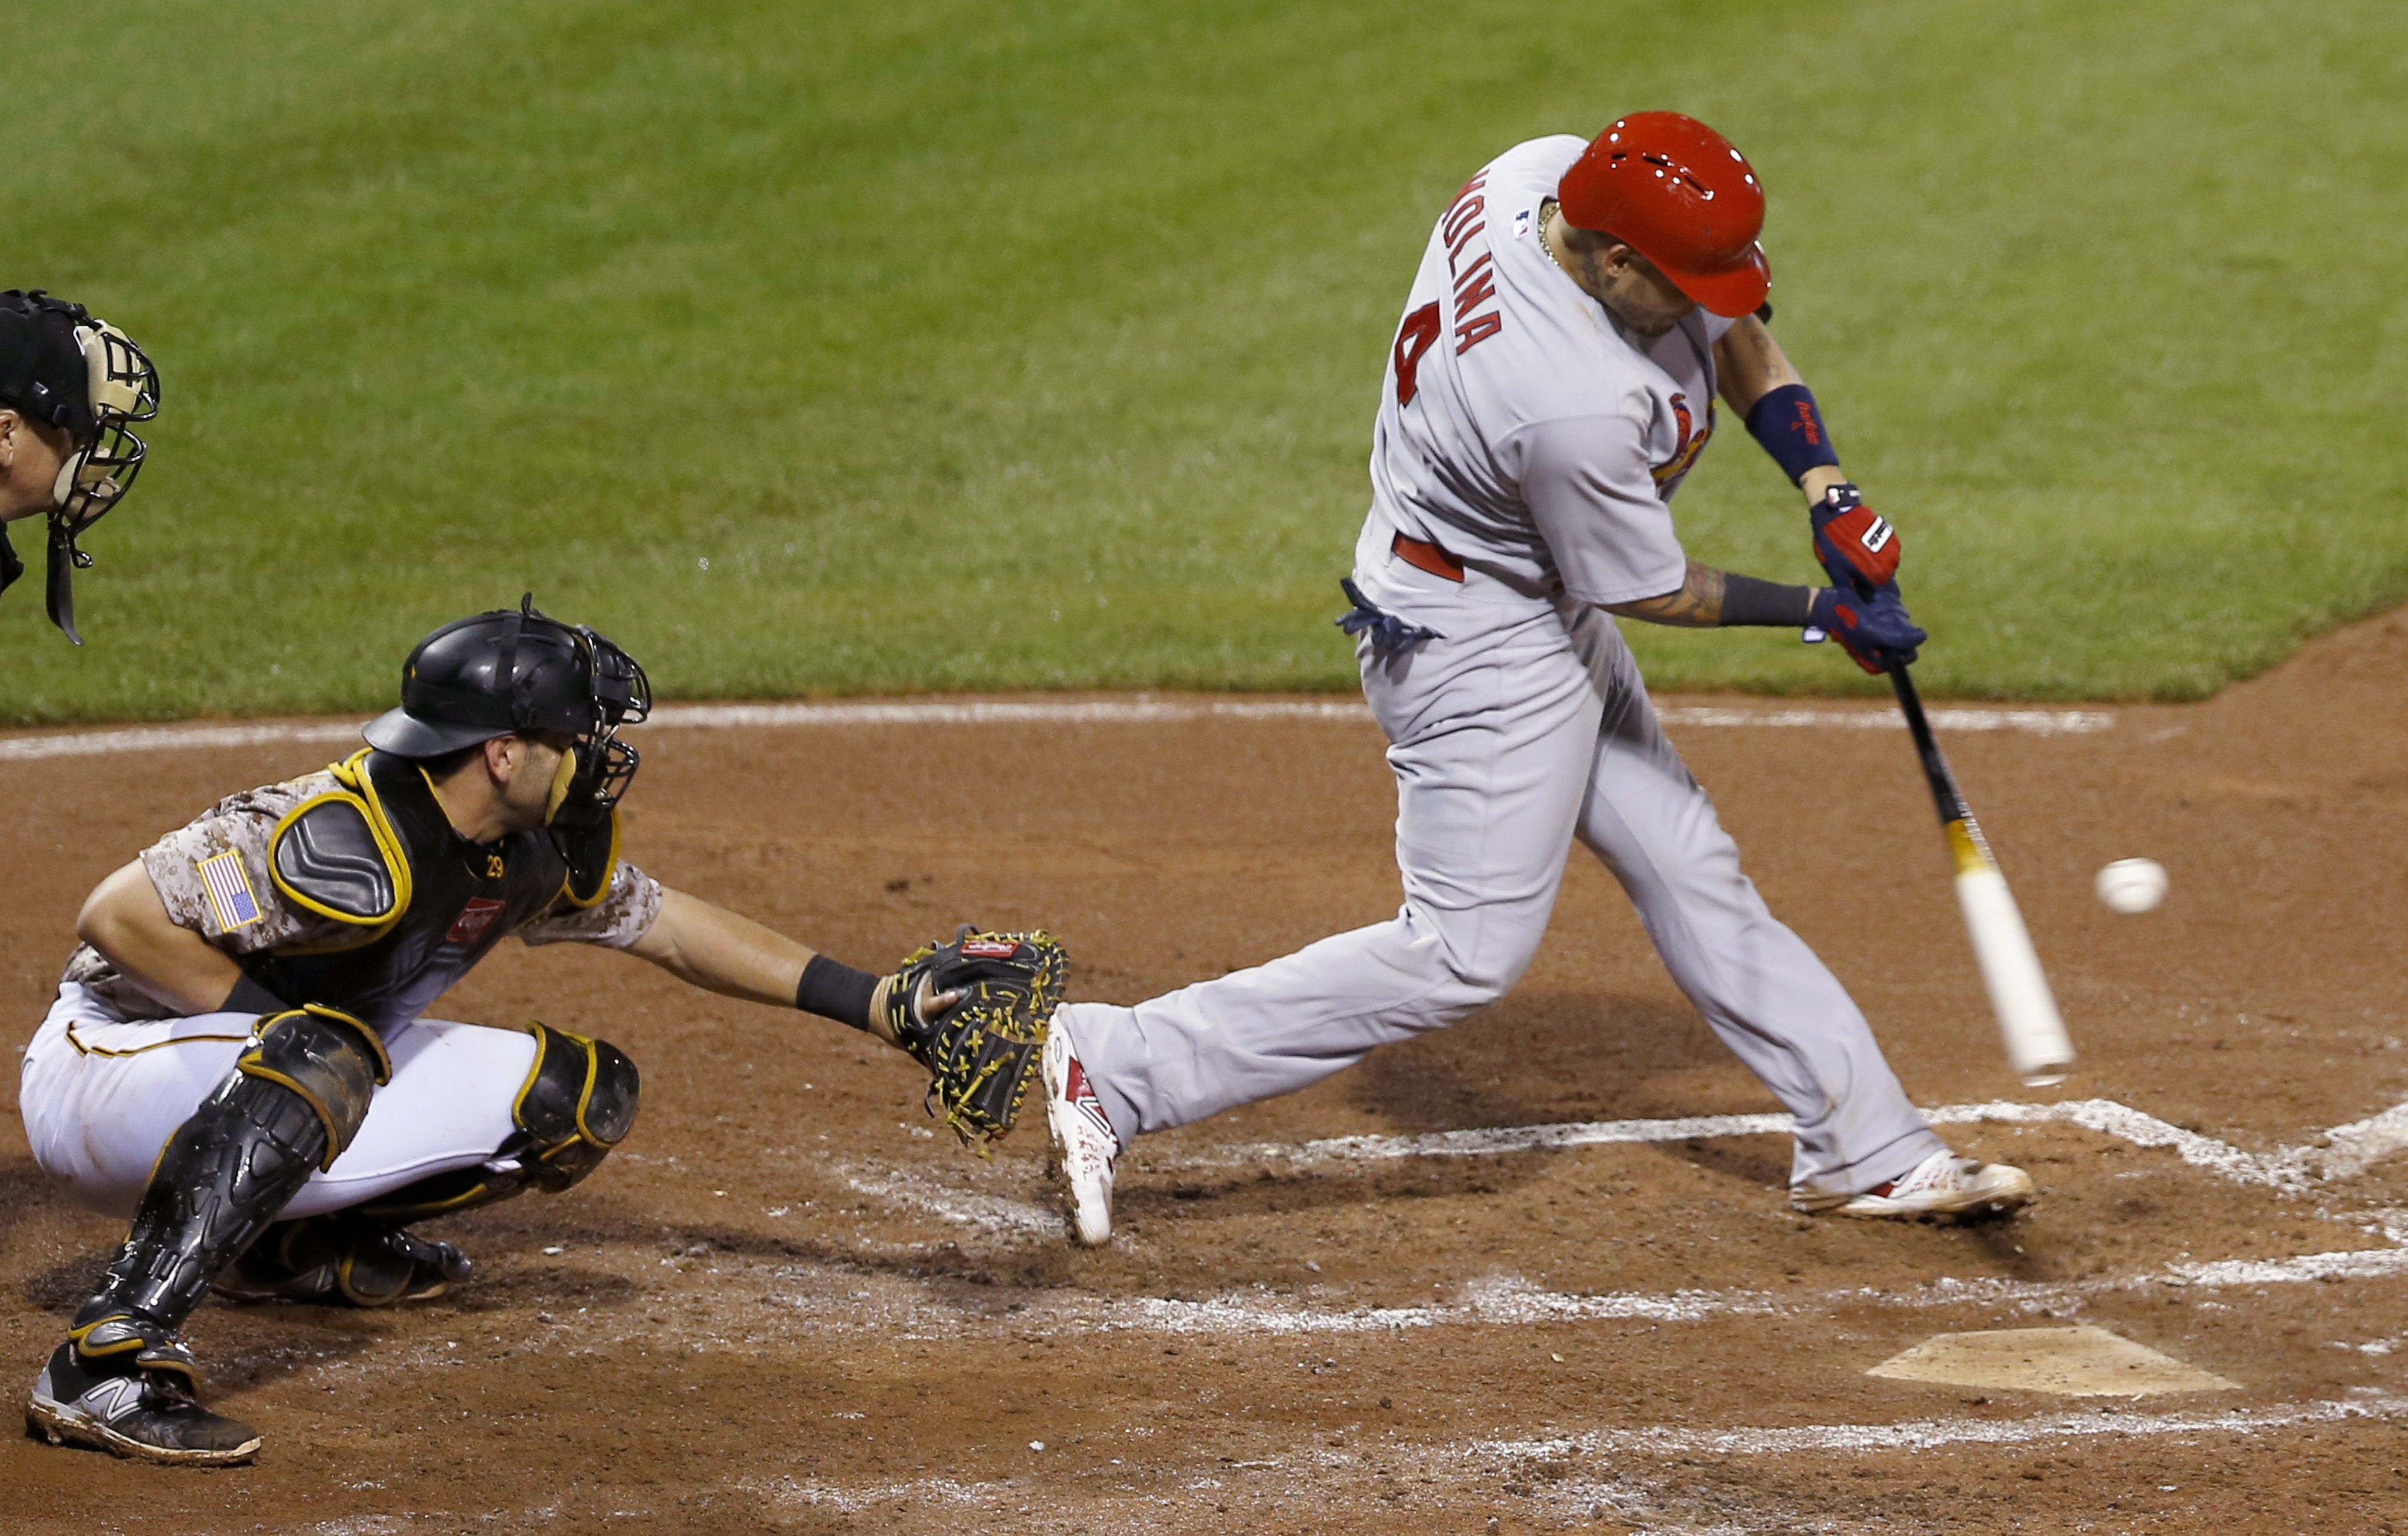 St. Louis Cardinals' Yadier Molina, right, hits a single with the bases loaded in front of Pittsburgh Pirates catcher Francisco Cervelli to drive in two runs during the fifth inning of a baseball game, Thursday, July 9, 2015, in Pittsburgh. (AP Photo/Keit